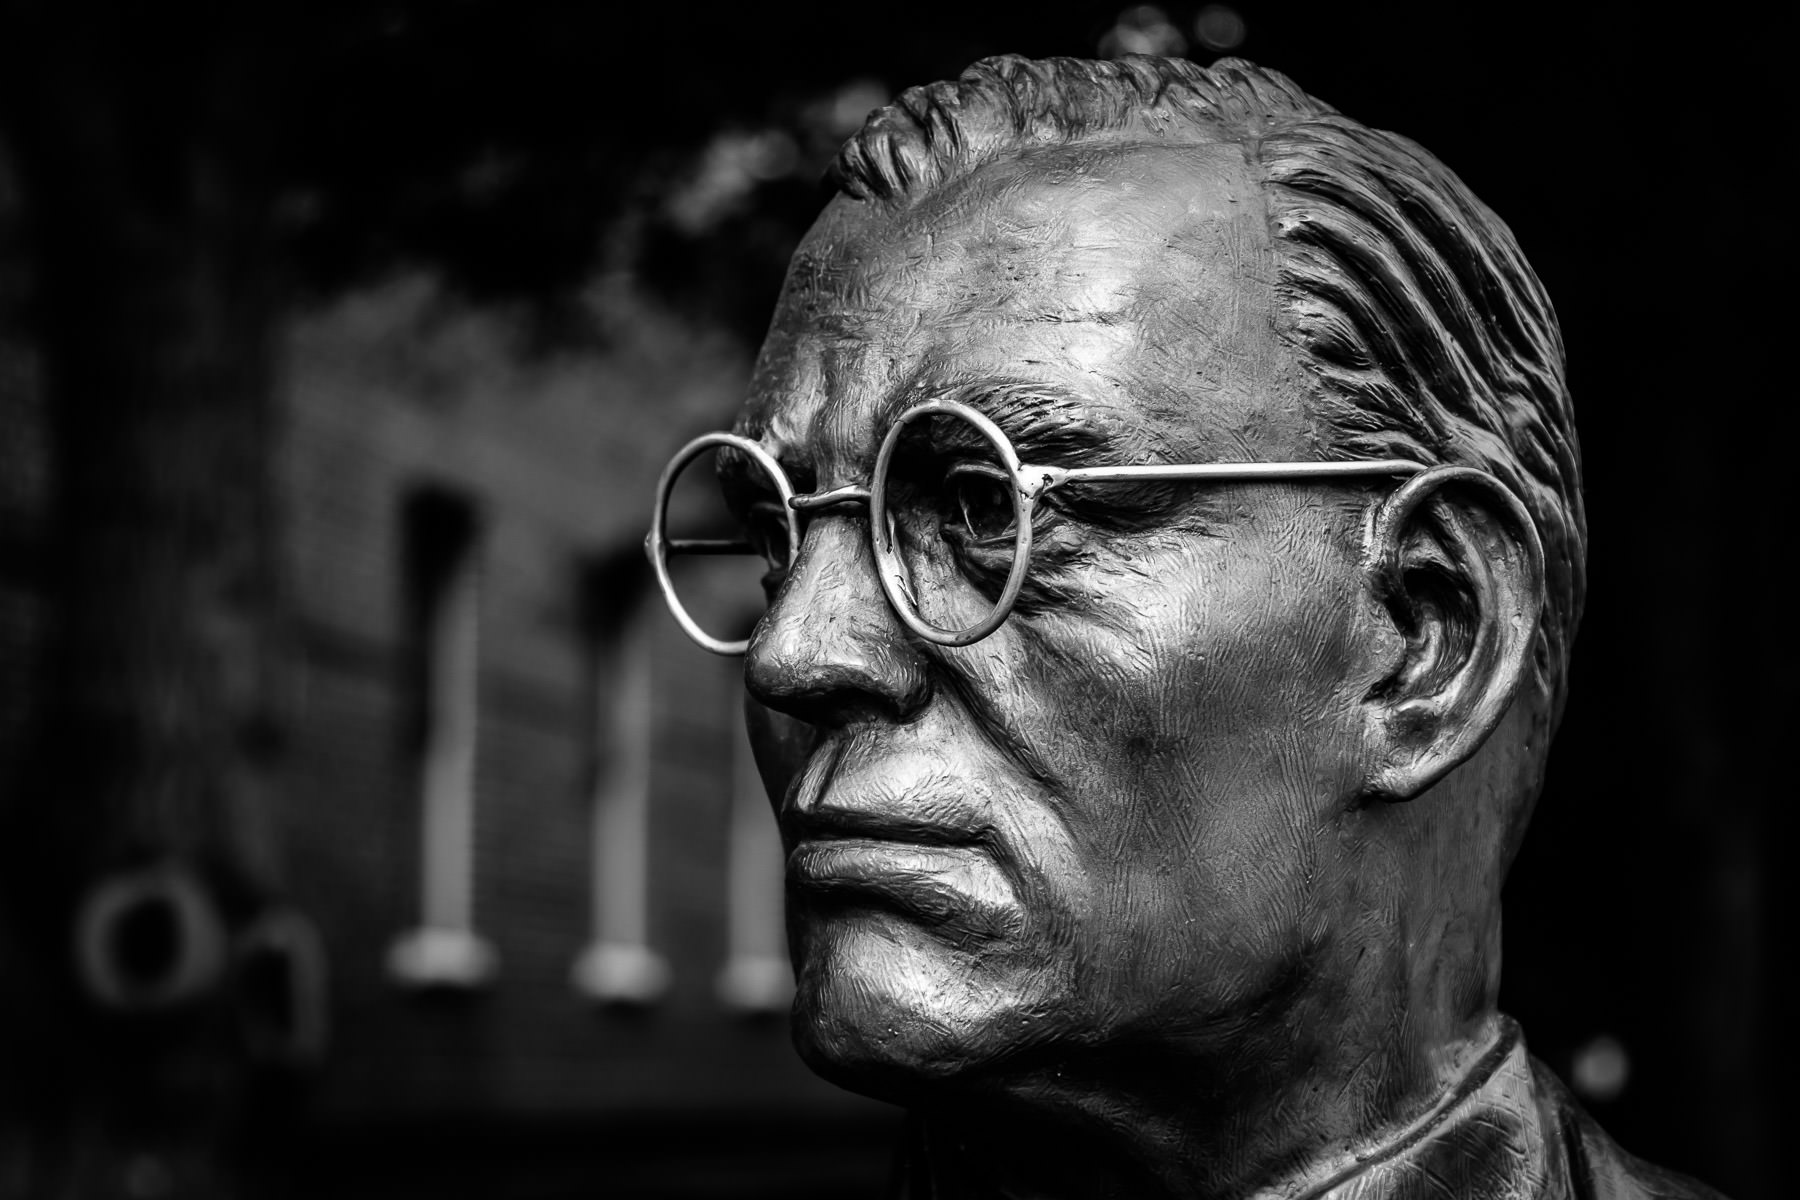 Detail of a statue of former mayor of Grapevine, Texas, Benjamin Richard Wall, sculpted by noted bronze artist Archie St. Clair.